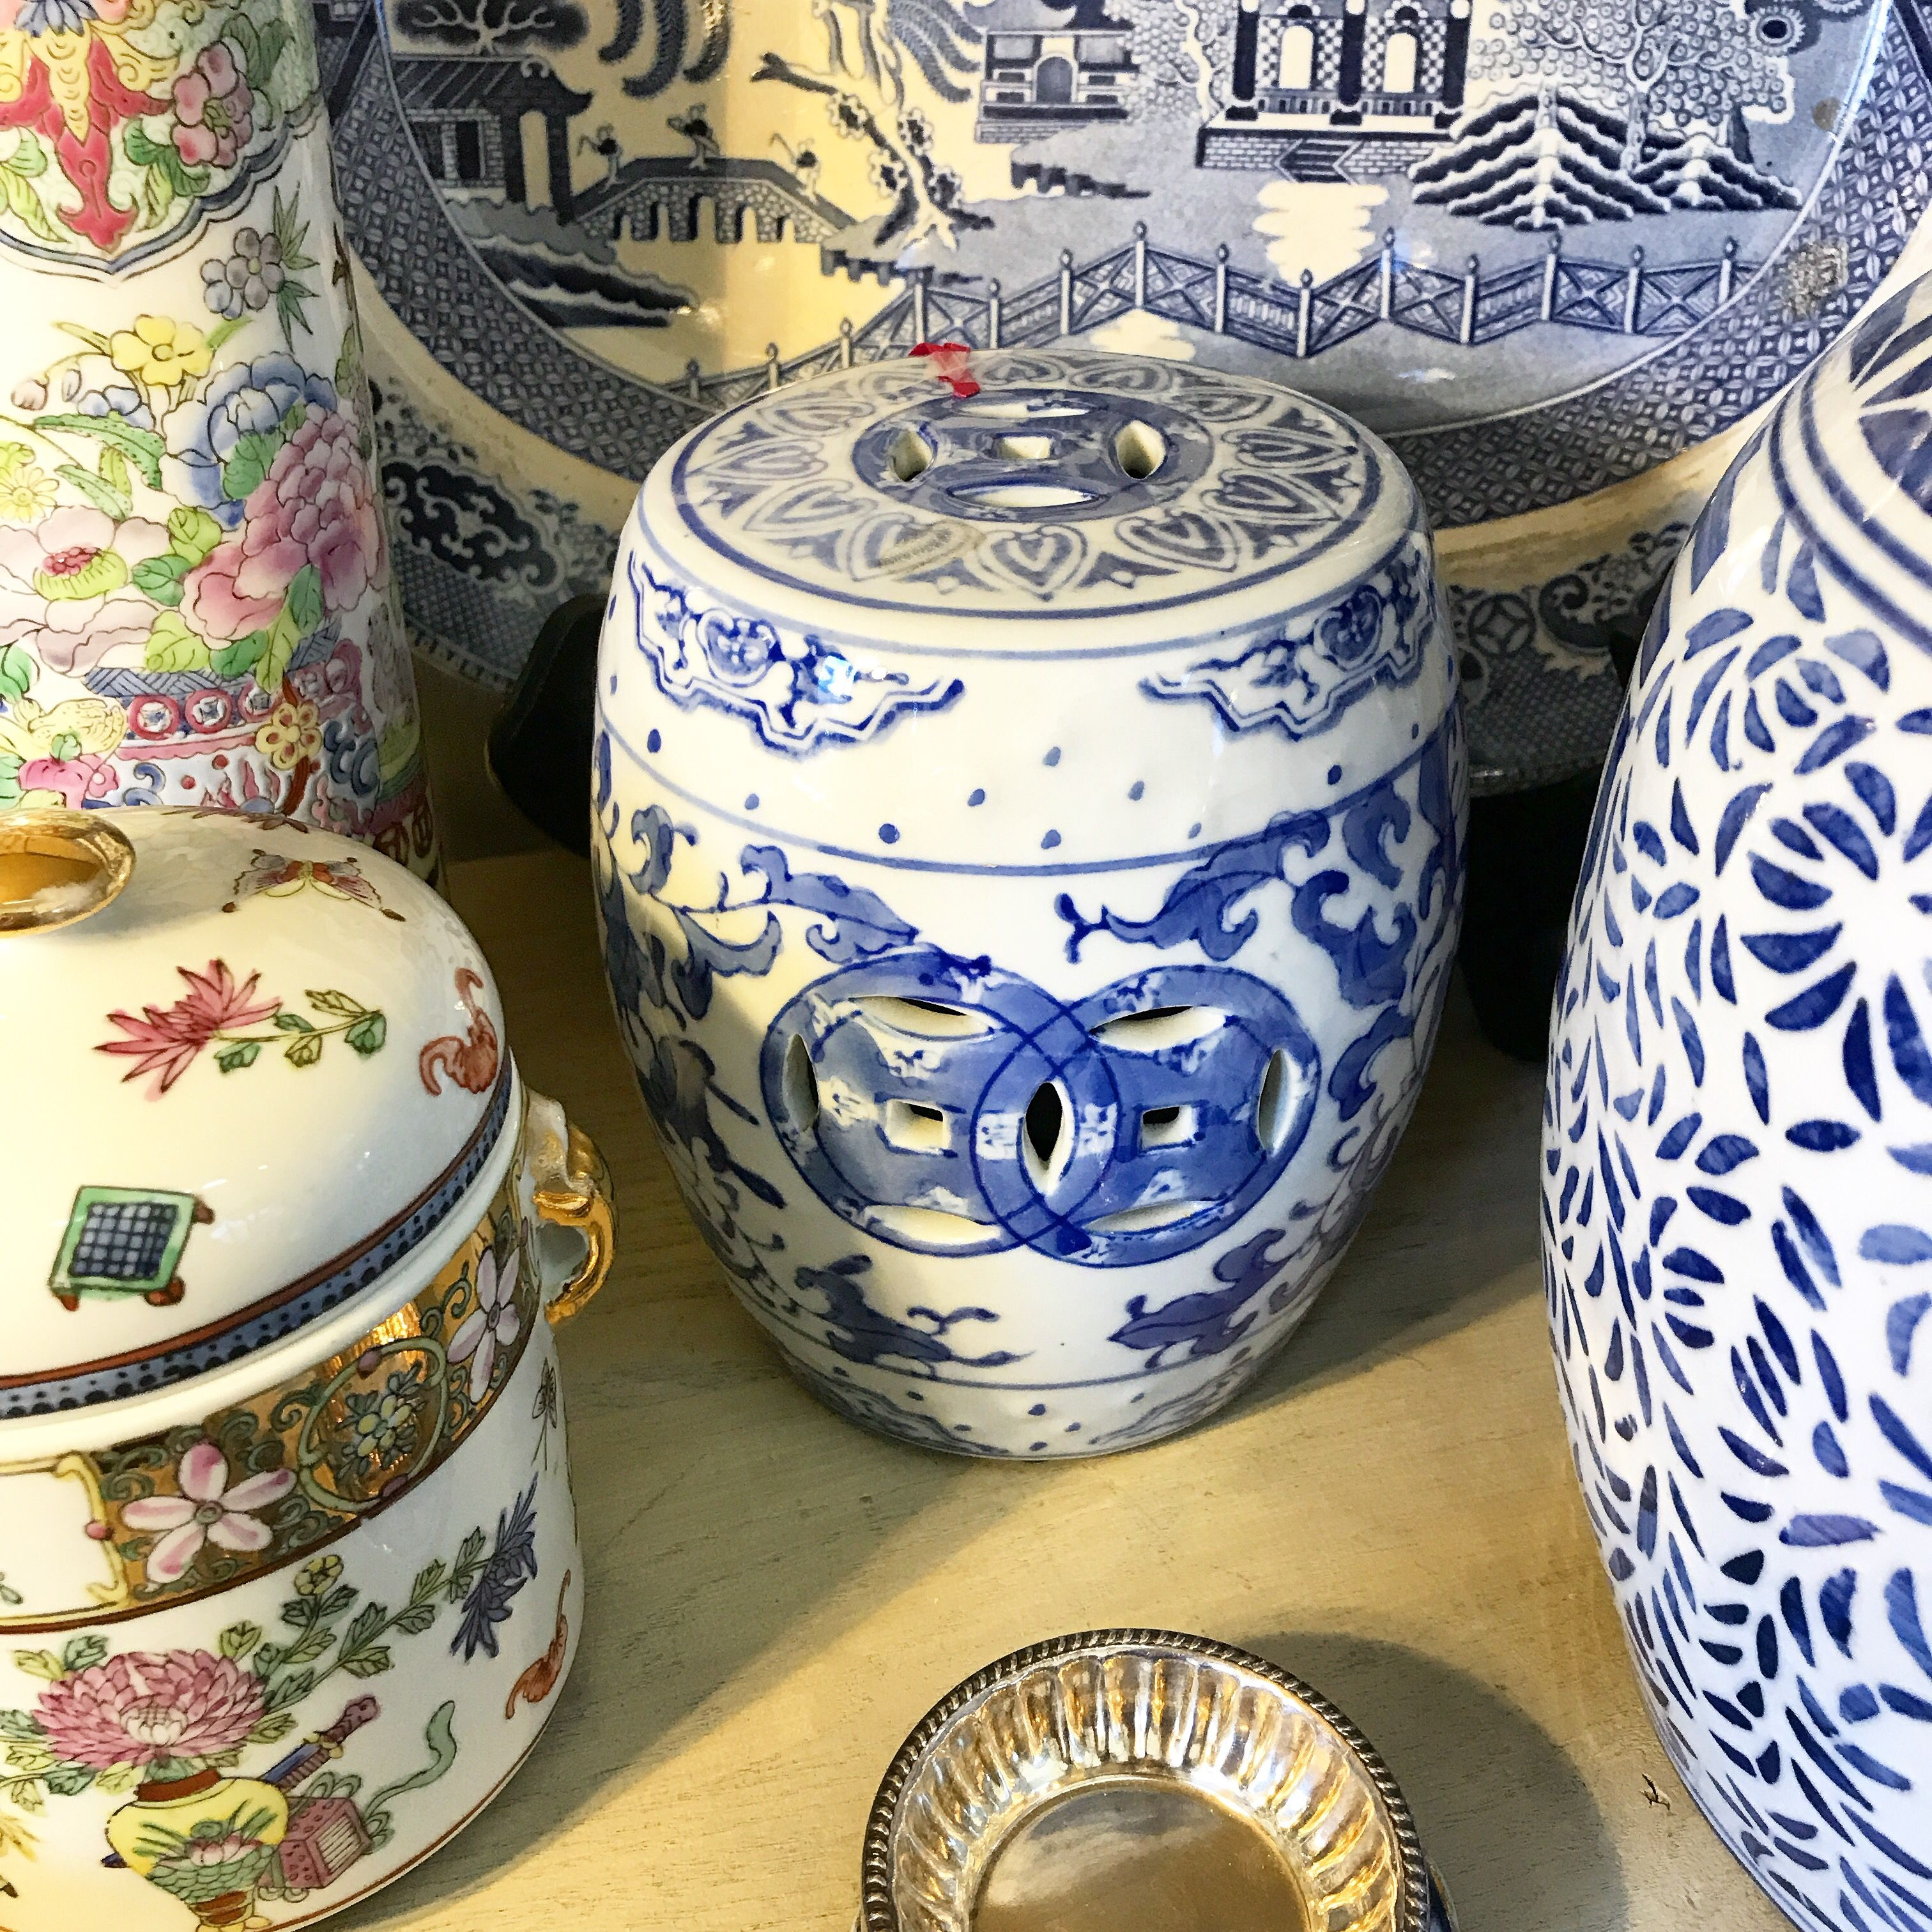 Enjoyable Miniature Blue And White Chinese Garden Stool 4 5X6 25H Pabps2019 Chair Design Images Pabps2019Com